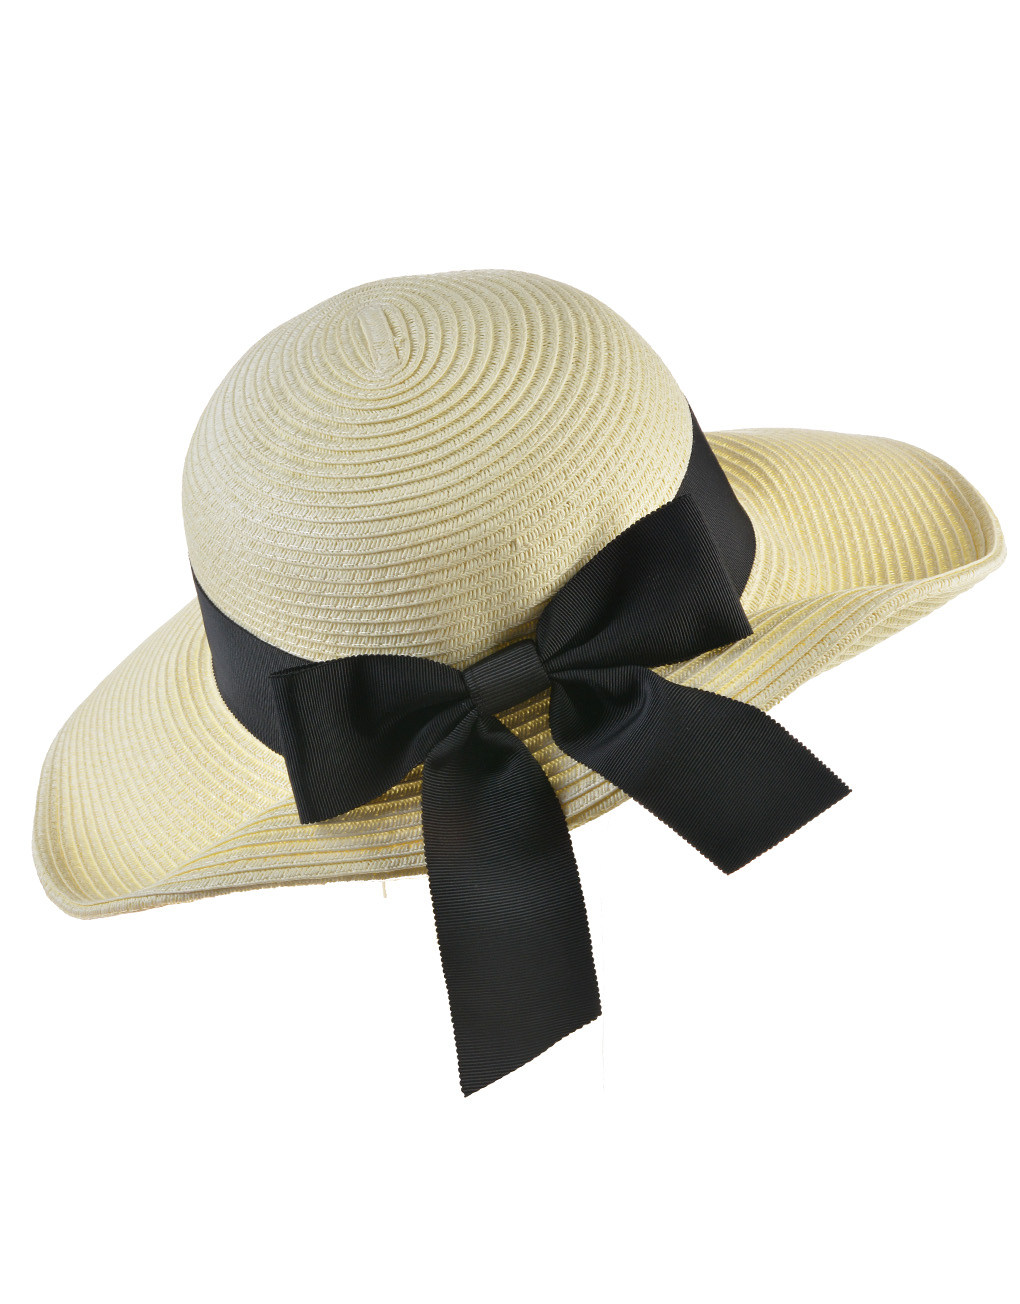 Bow Side Straw Floppy Hat Wholesale Price   Discount 188701f652a